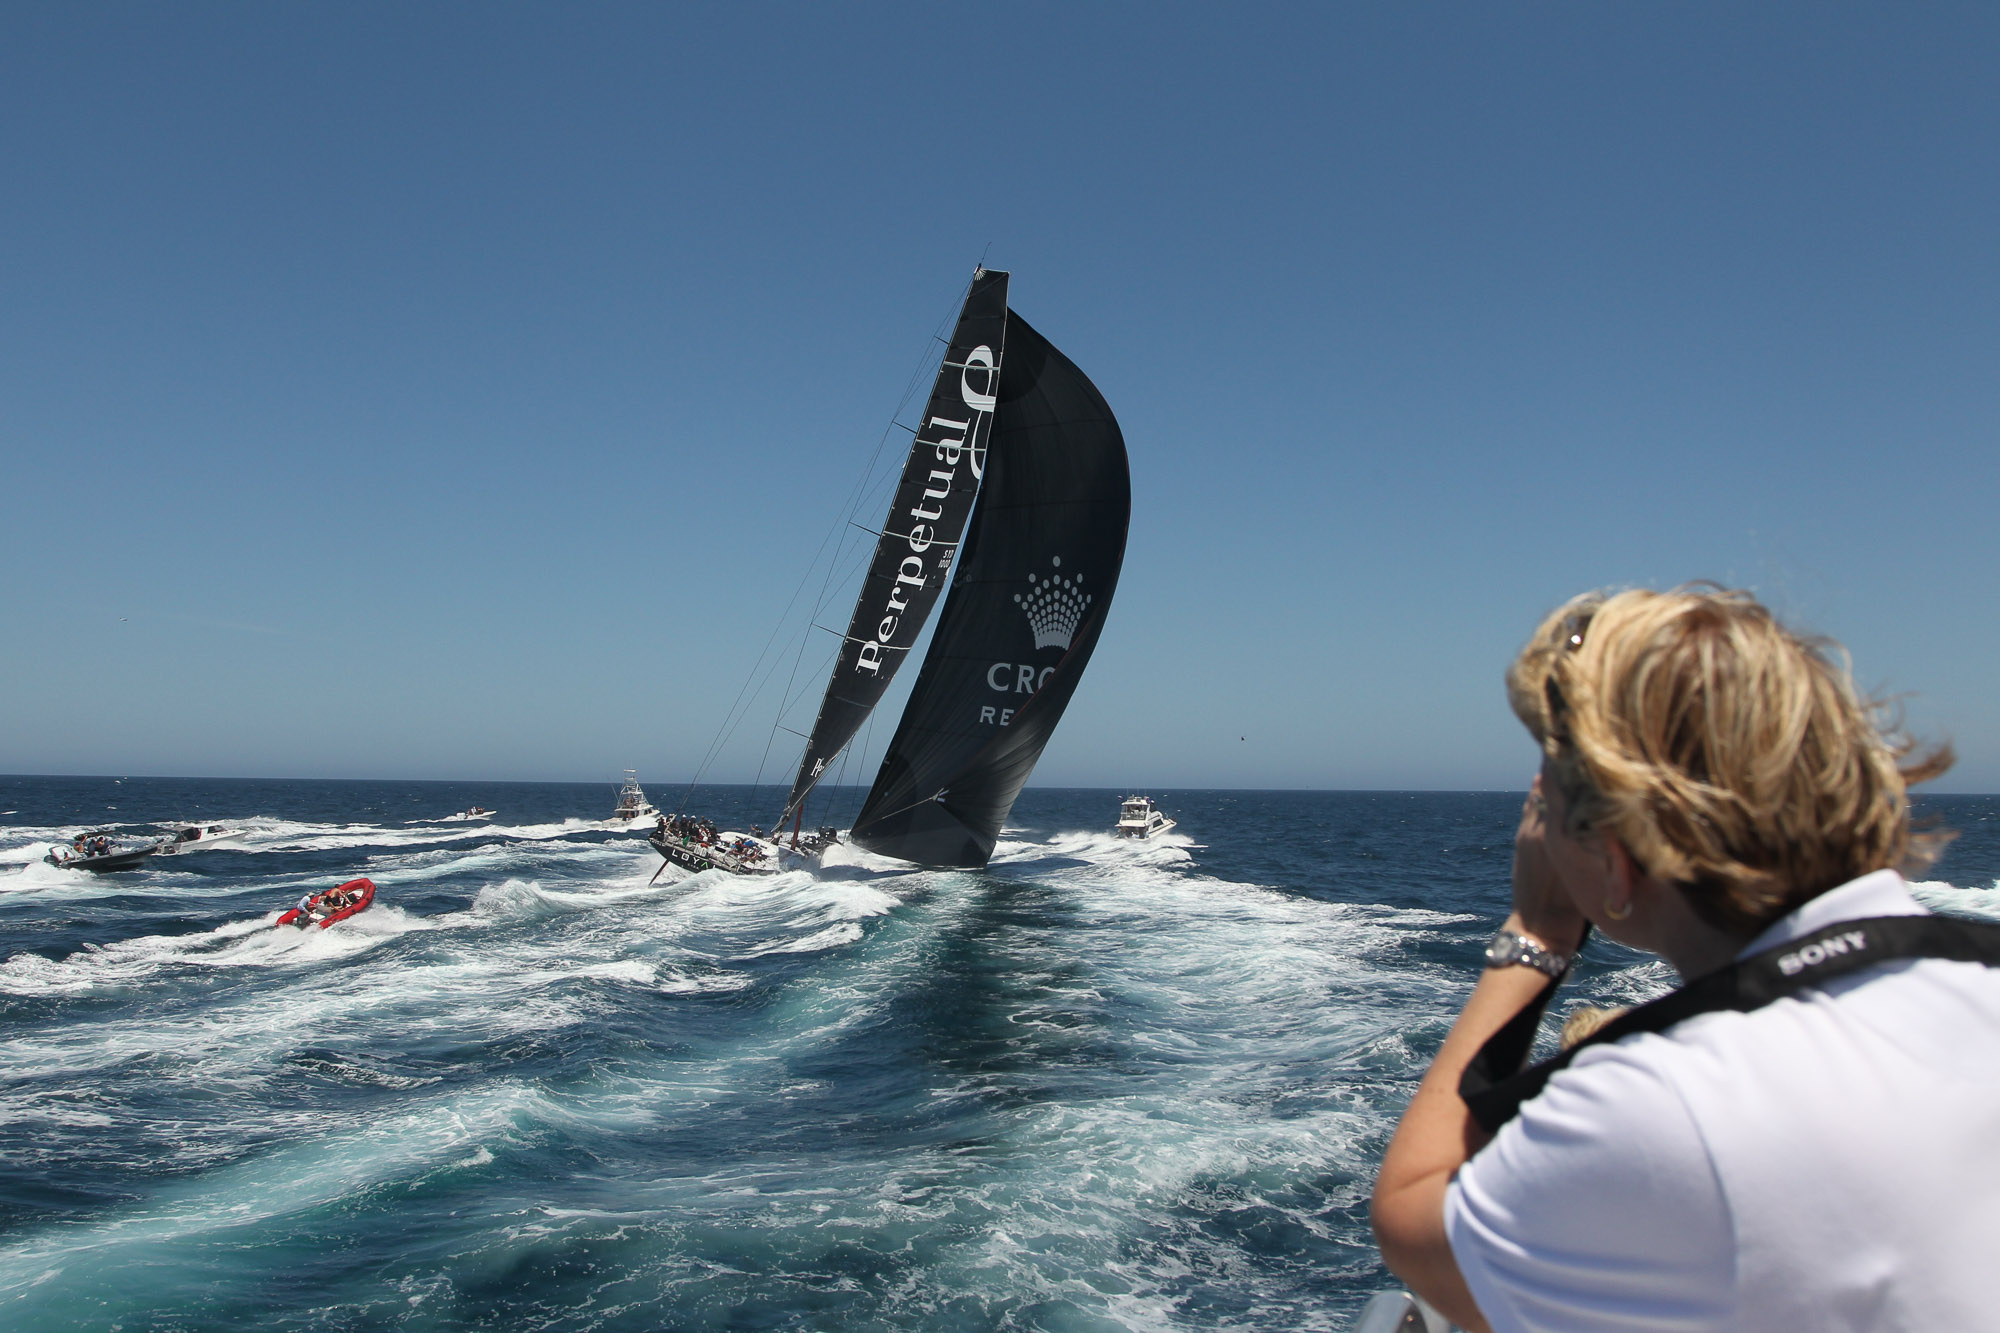 Open Ocean, Sydney To Hobart, Yacht Race